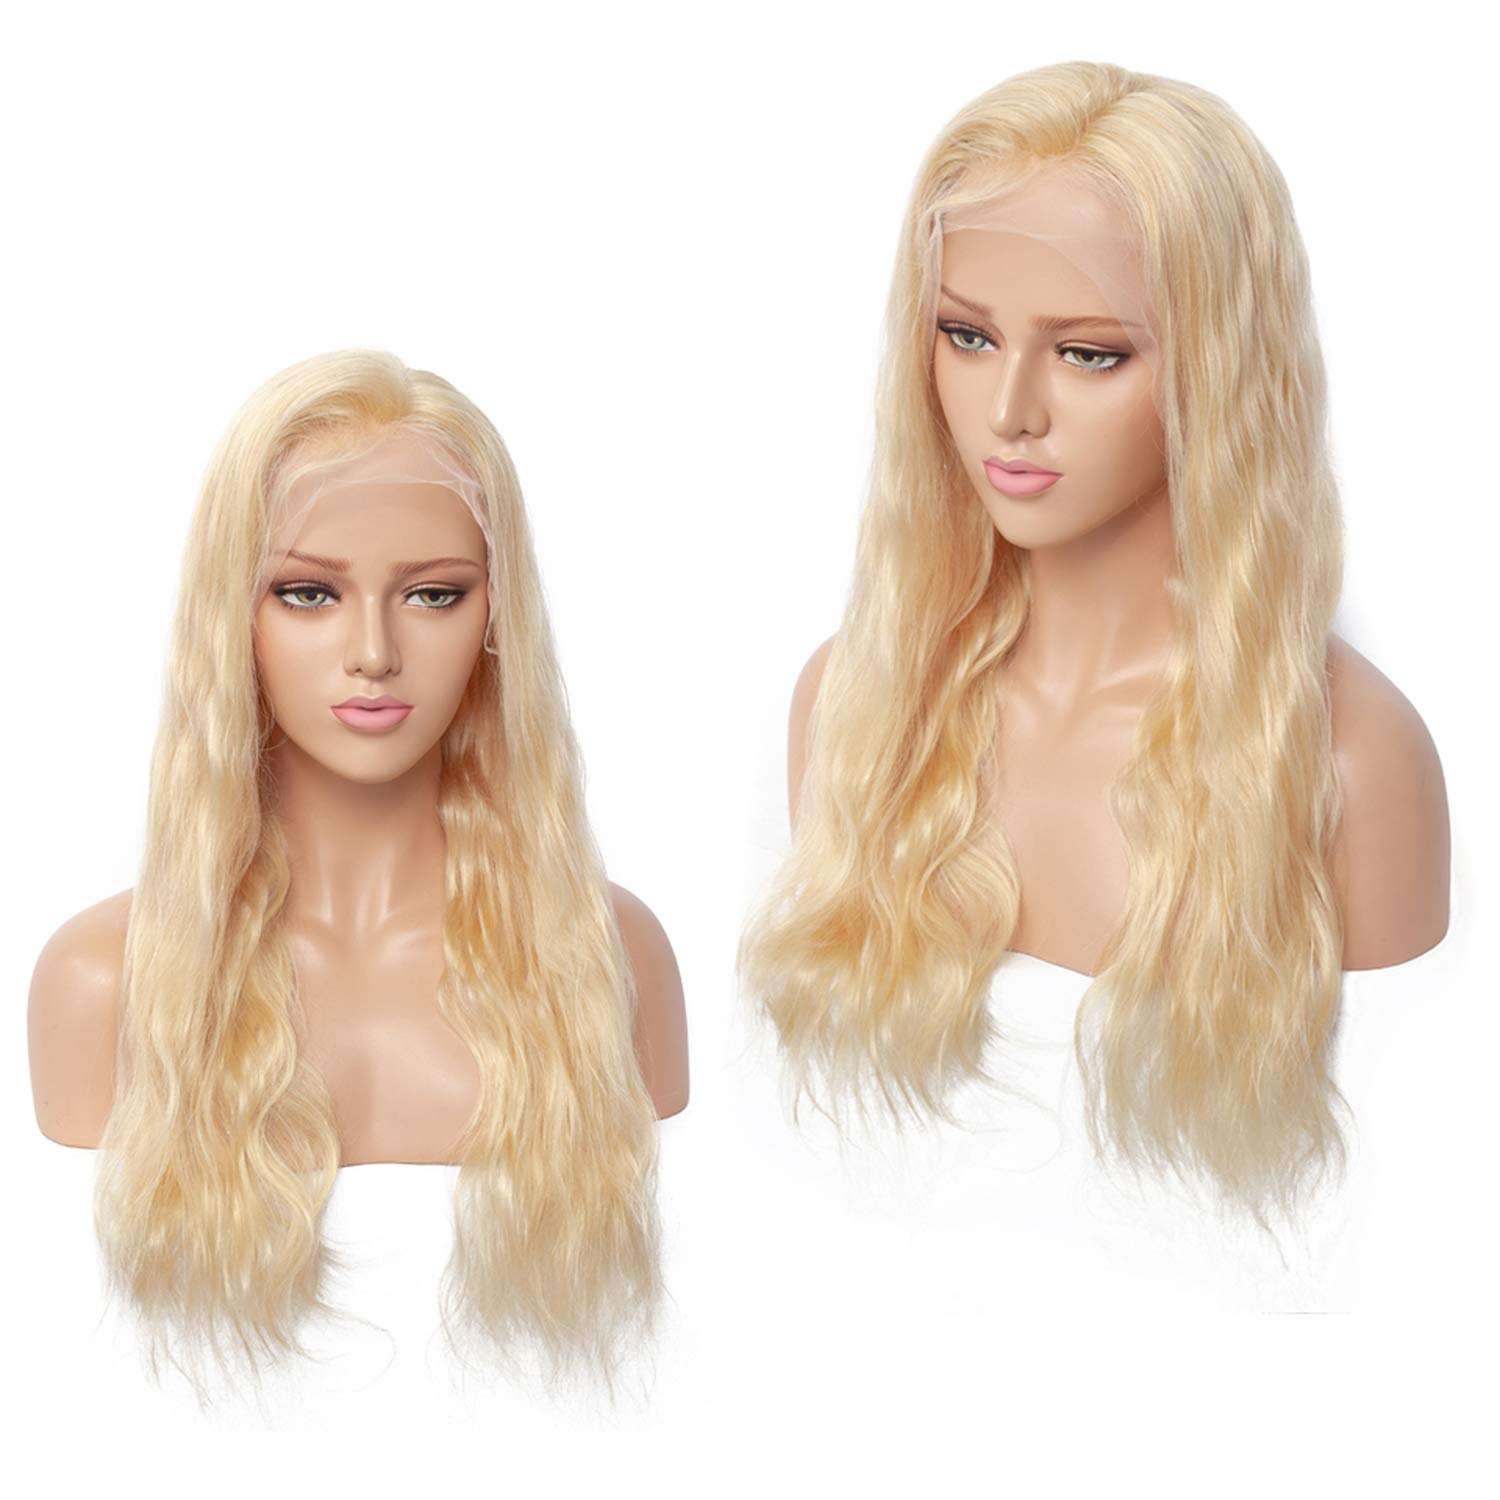 #613 Blonde Full Lace Wigs Peruvian Hair Transparent Lace Full Lace Human Hair Wig With Baby Hair 8-24 Inch,10inches,130%